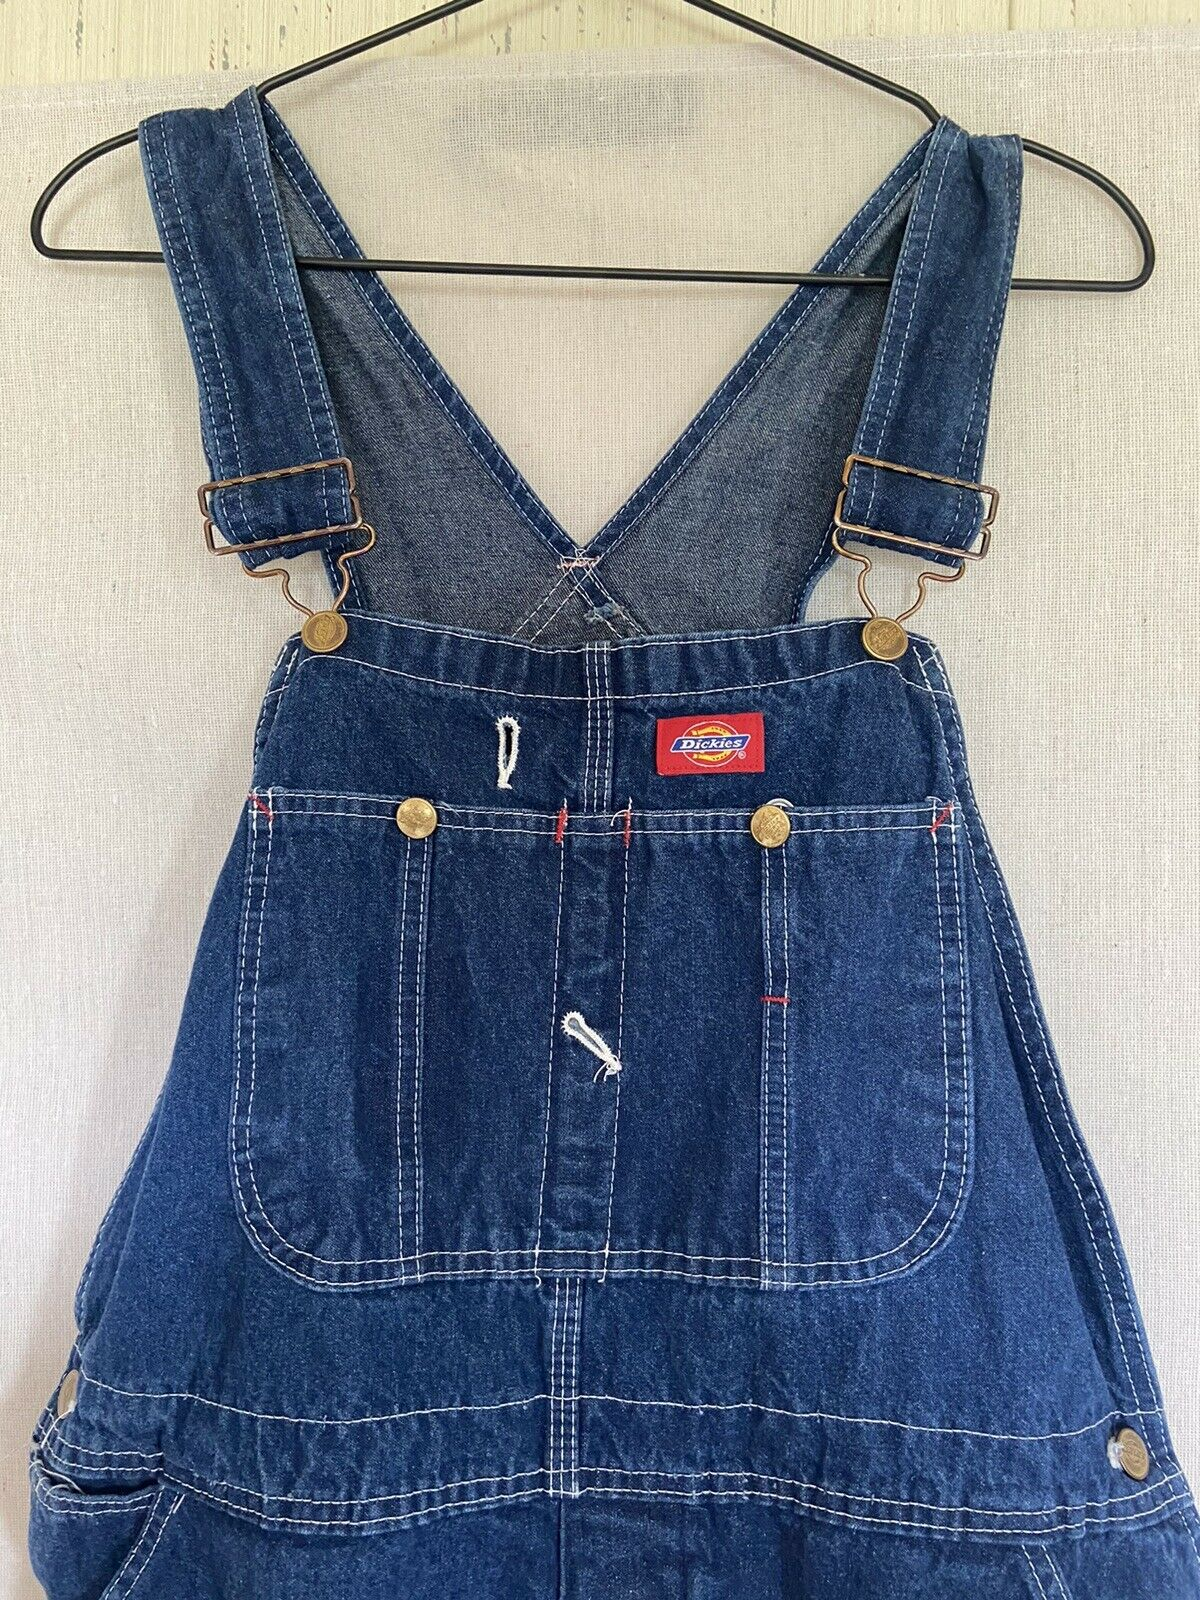 Dickies Denim Overalls Size 38x30 Fit 36x29 - image 2